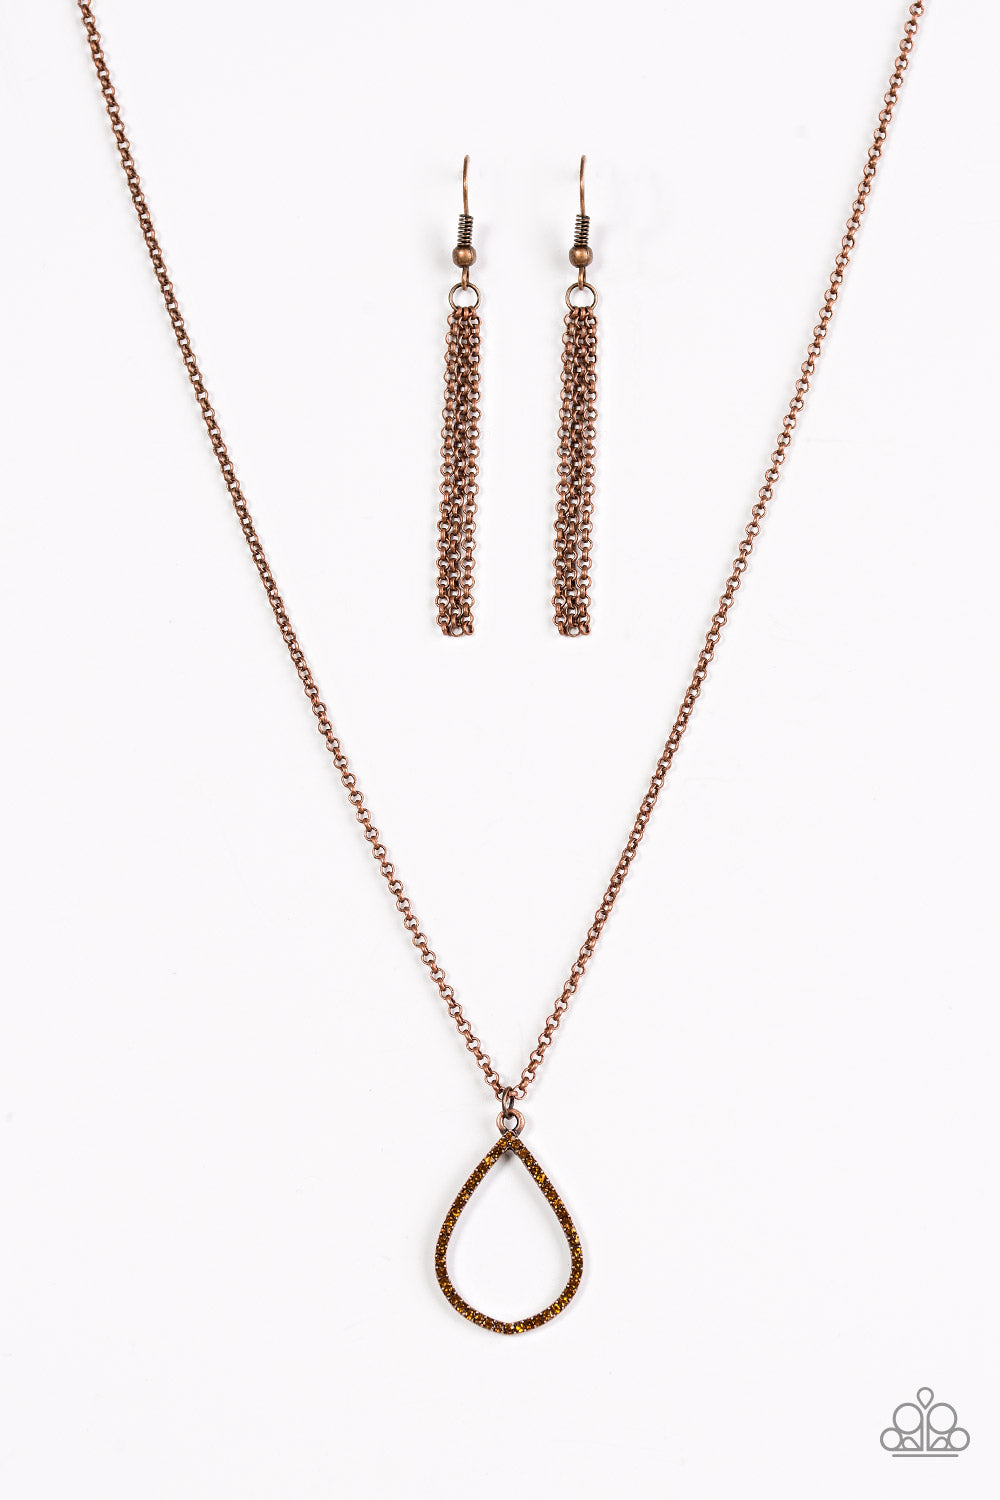 five-dollar-jewelry-timeless-twinkle-copper-necklace-paparazzi-accessories